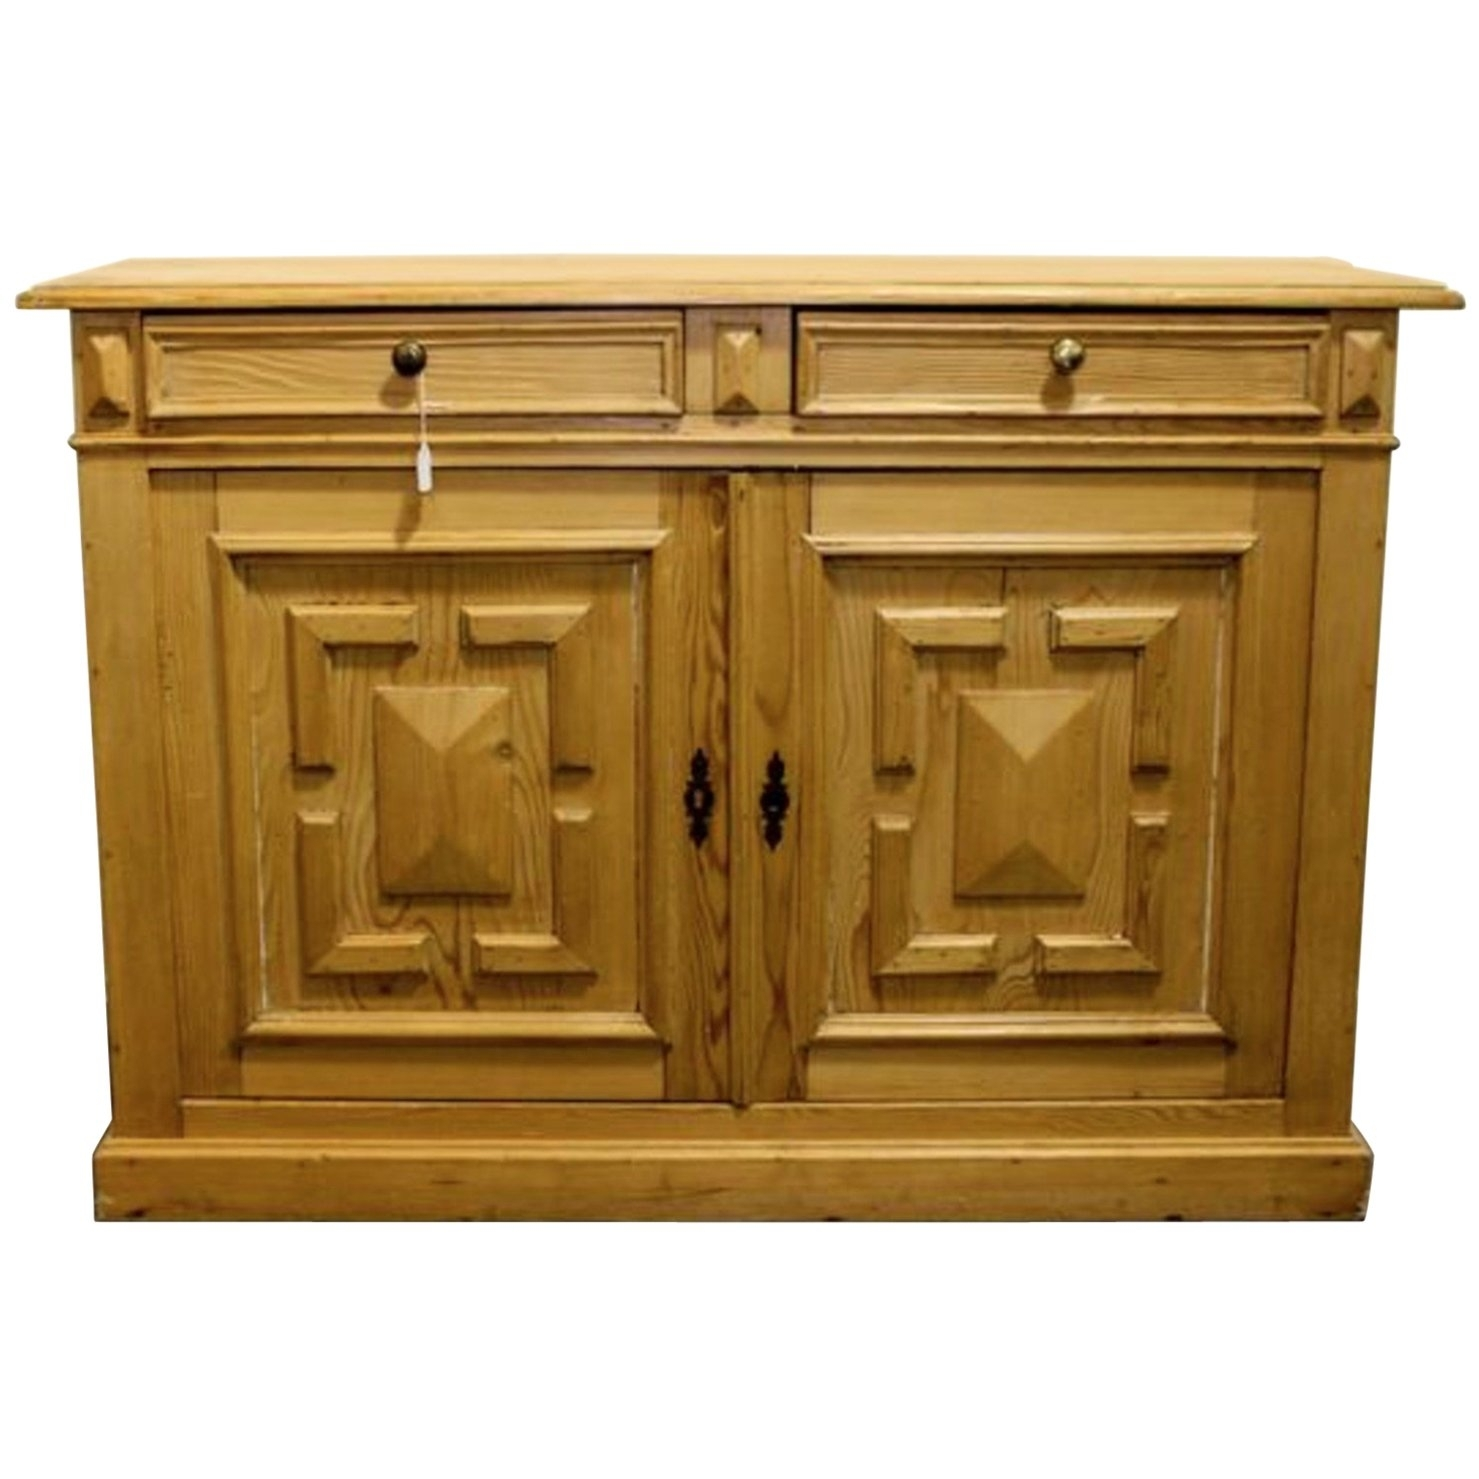 George Nelson Buffets - 5 For Sale At 1Stdibs throughout Girard 4 Door Sideboards (Image 10 of 30)